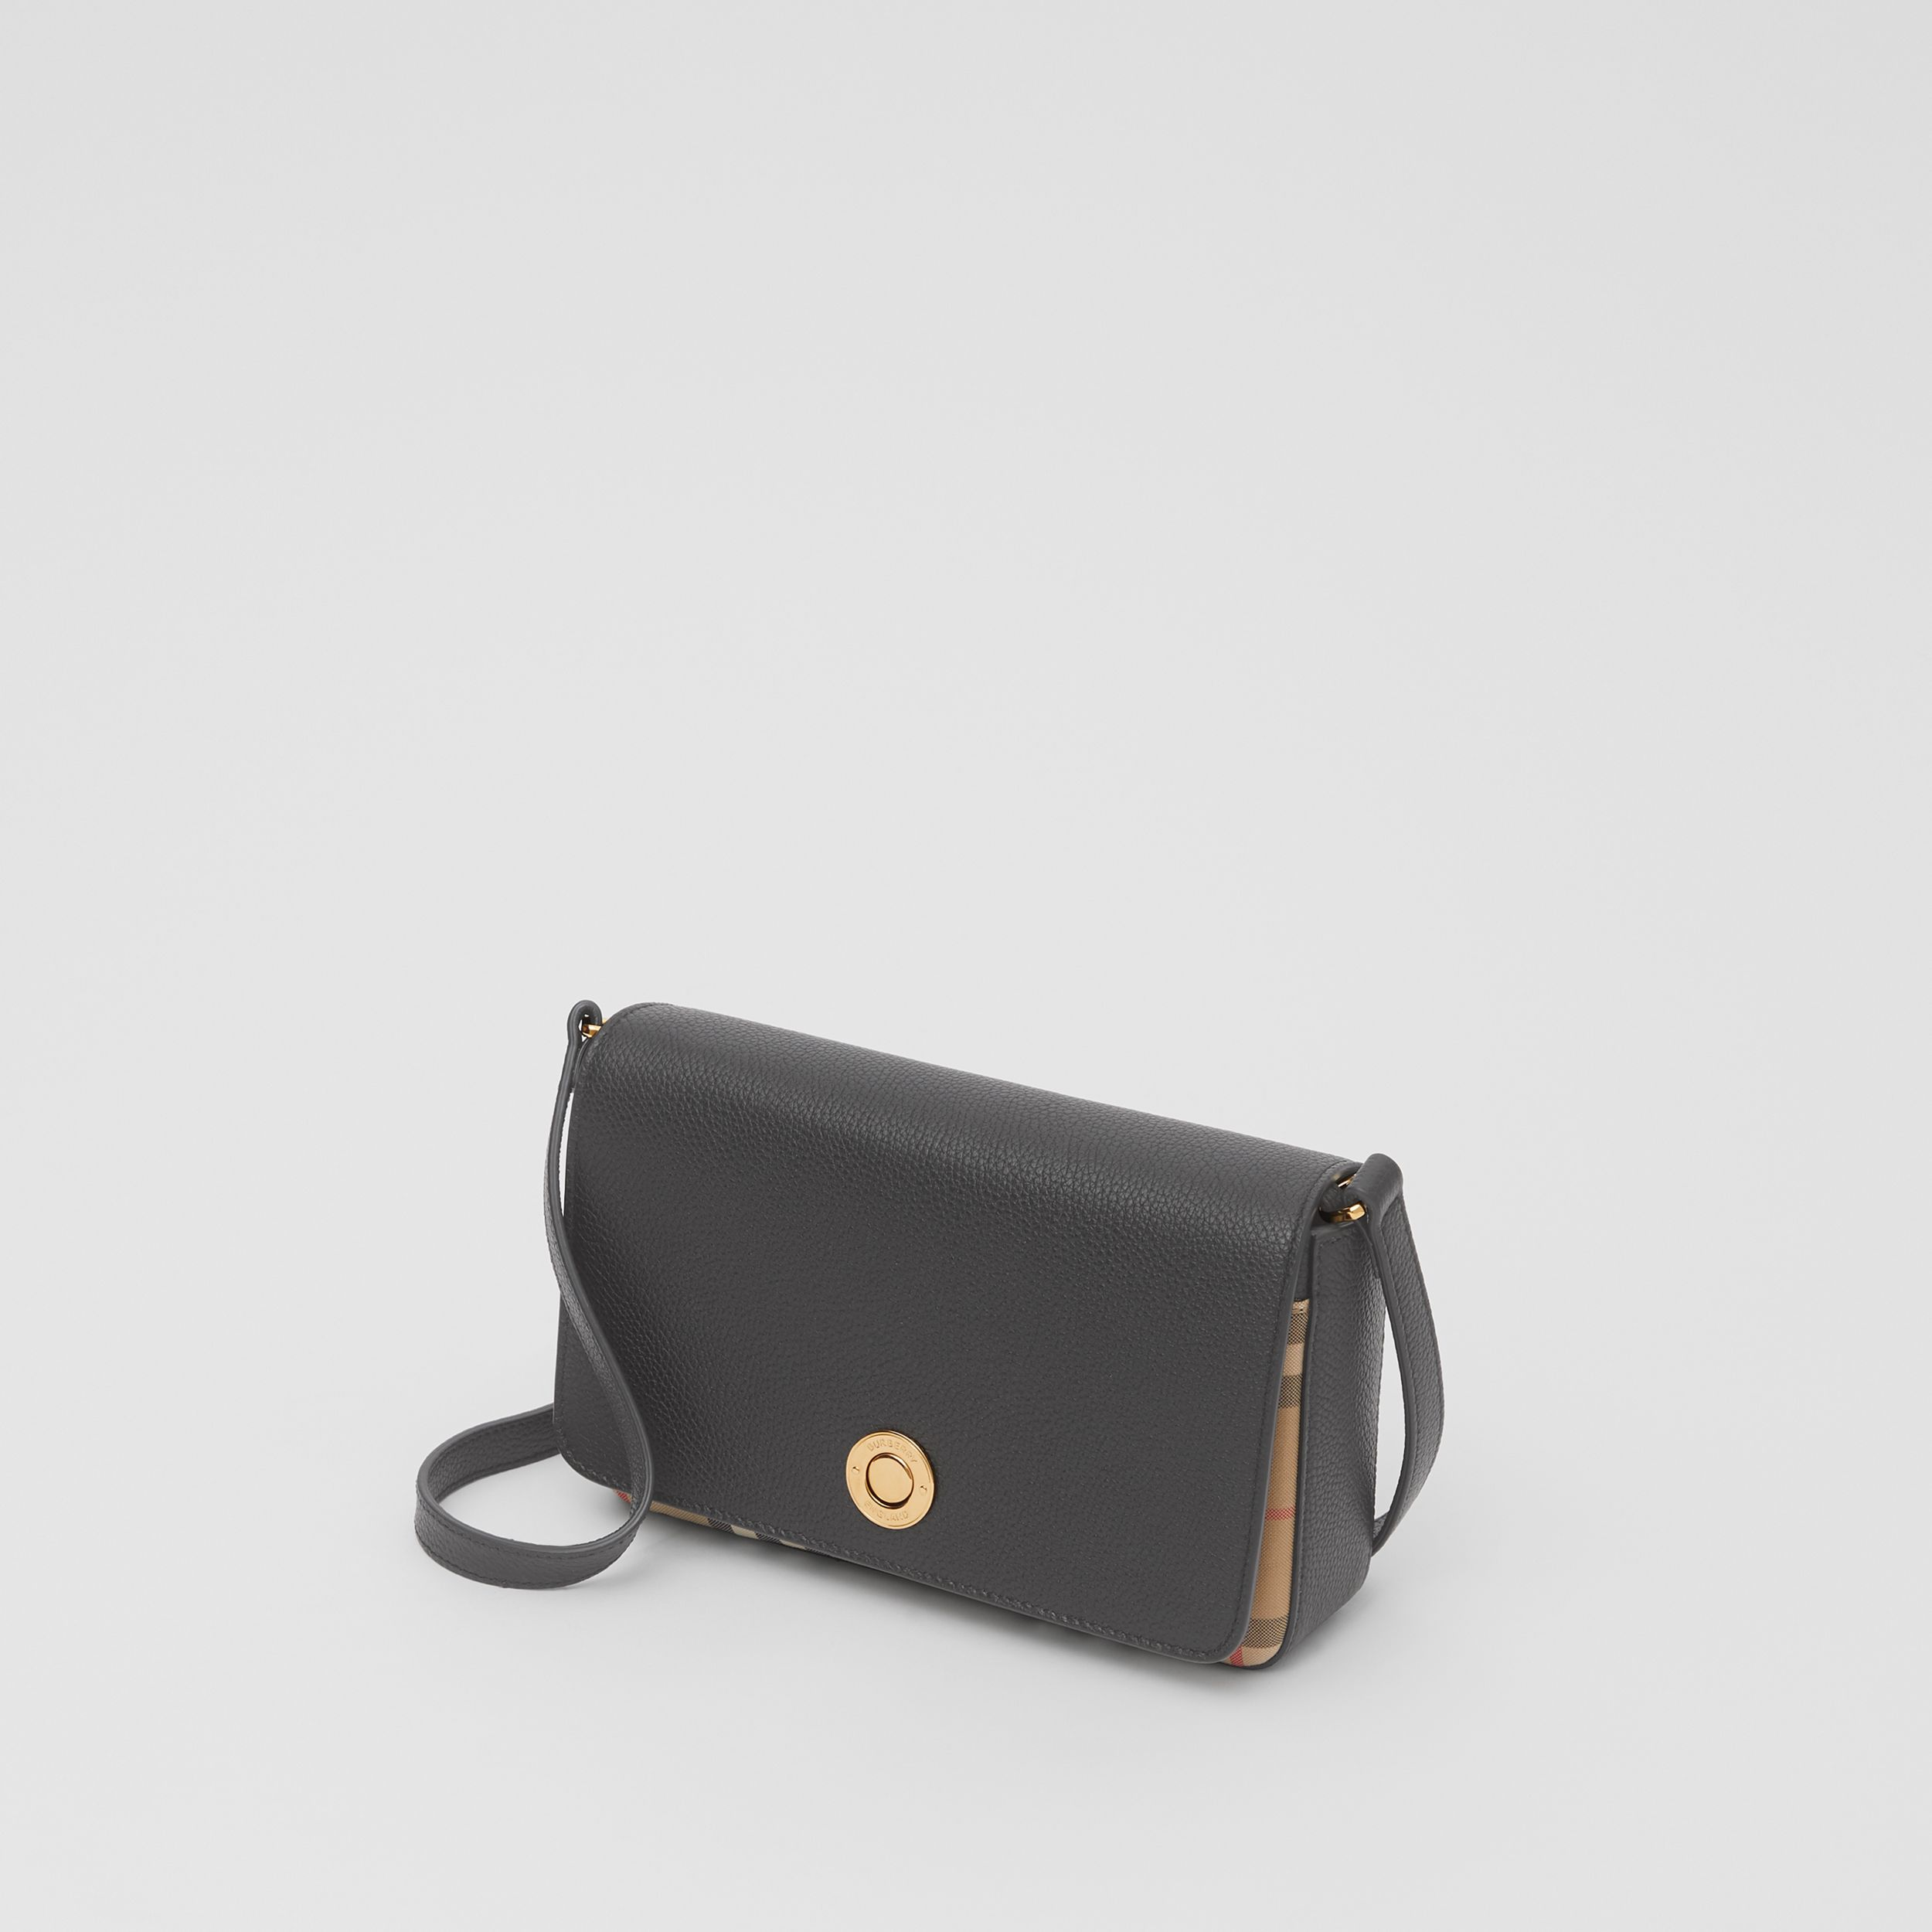 Small Leather and Vintage Check Crossbody Bag in Black - Women | Burberry Canada - 4